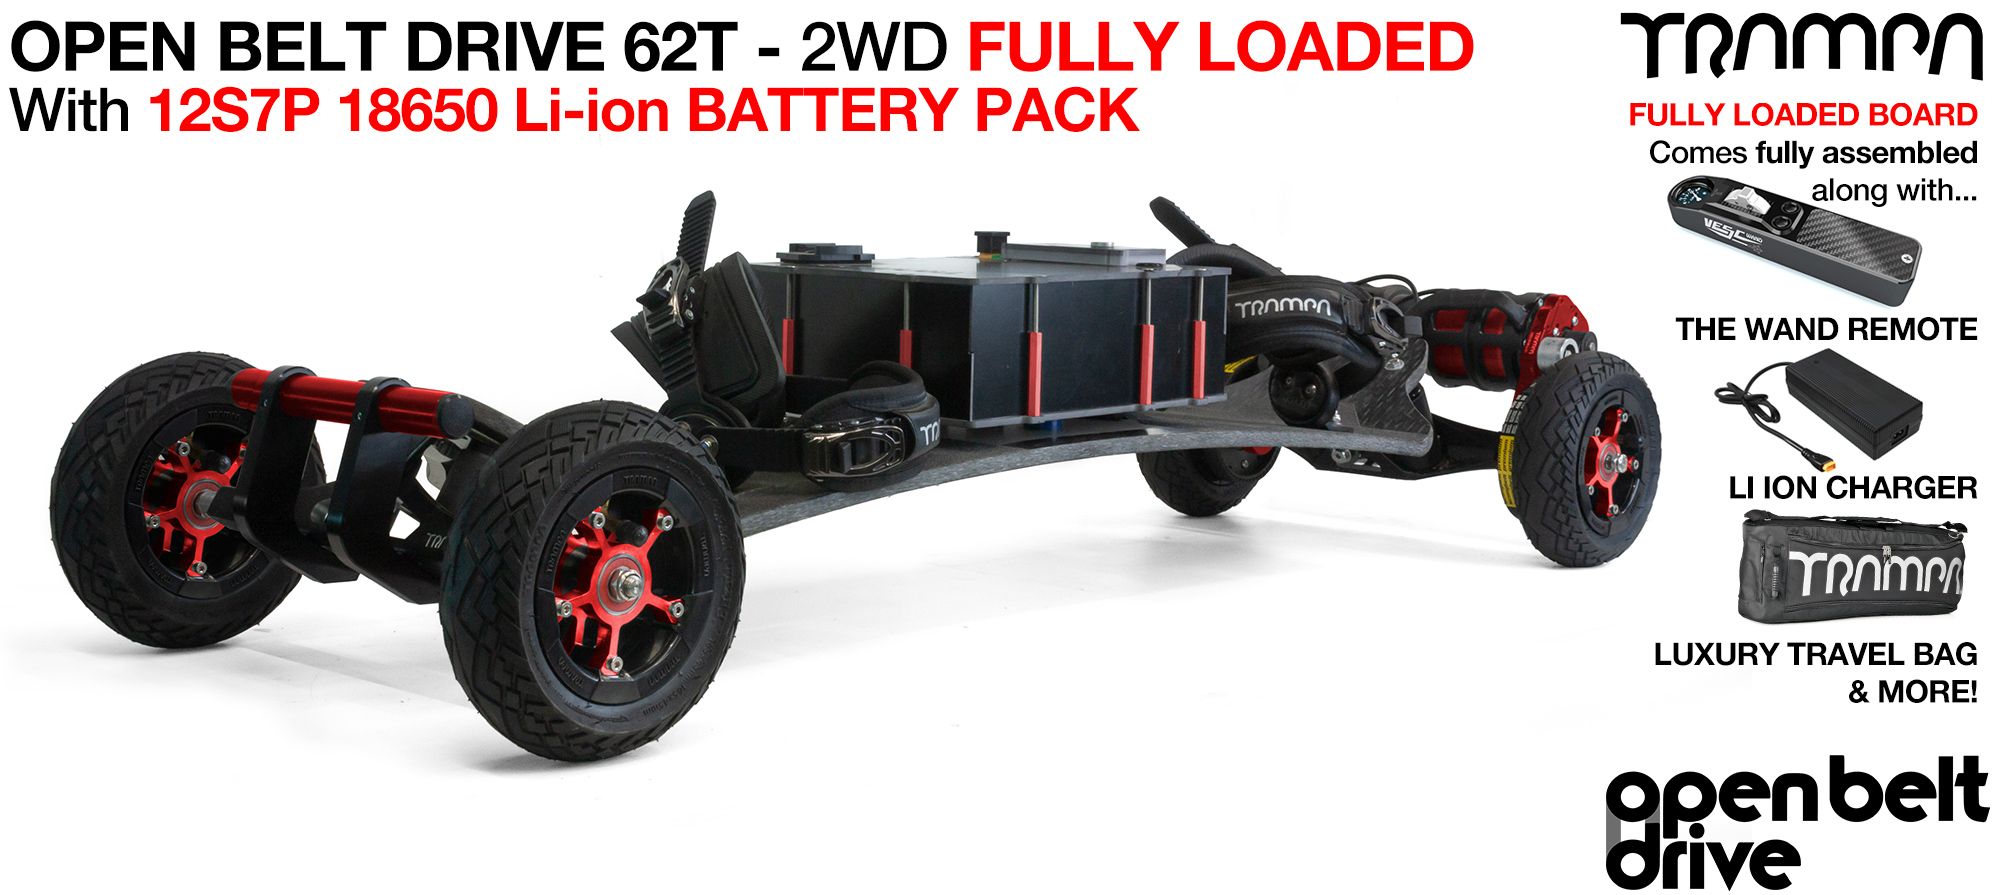 2WD 66T Open Belt Drive TRAMPA Electric Mountainboard with 6 Inch URBAN TREADs Wheels & 62 Tooth Pulleys - LOADED 18650 CELL Pack